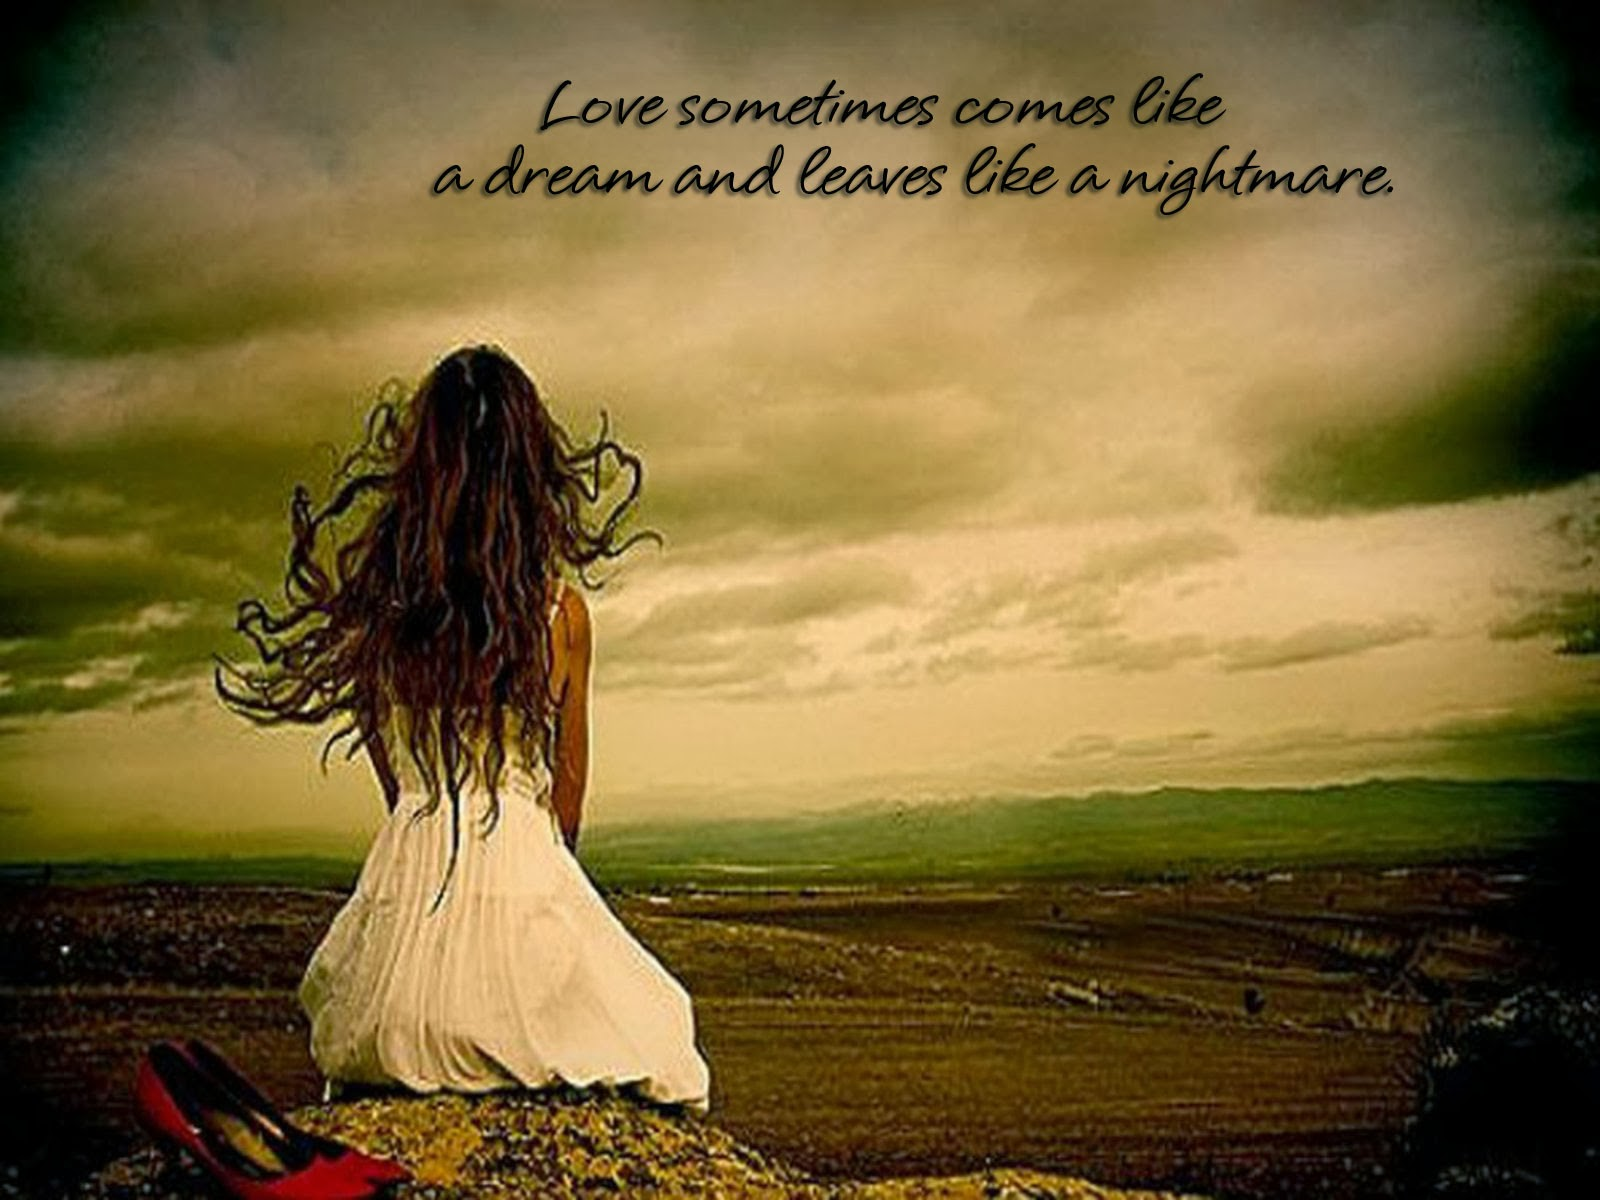 Love Wallpapers With Written : sad qoutes for broken hearts ~ Strangers World